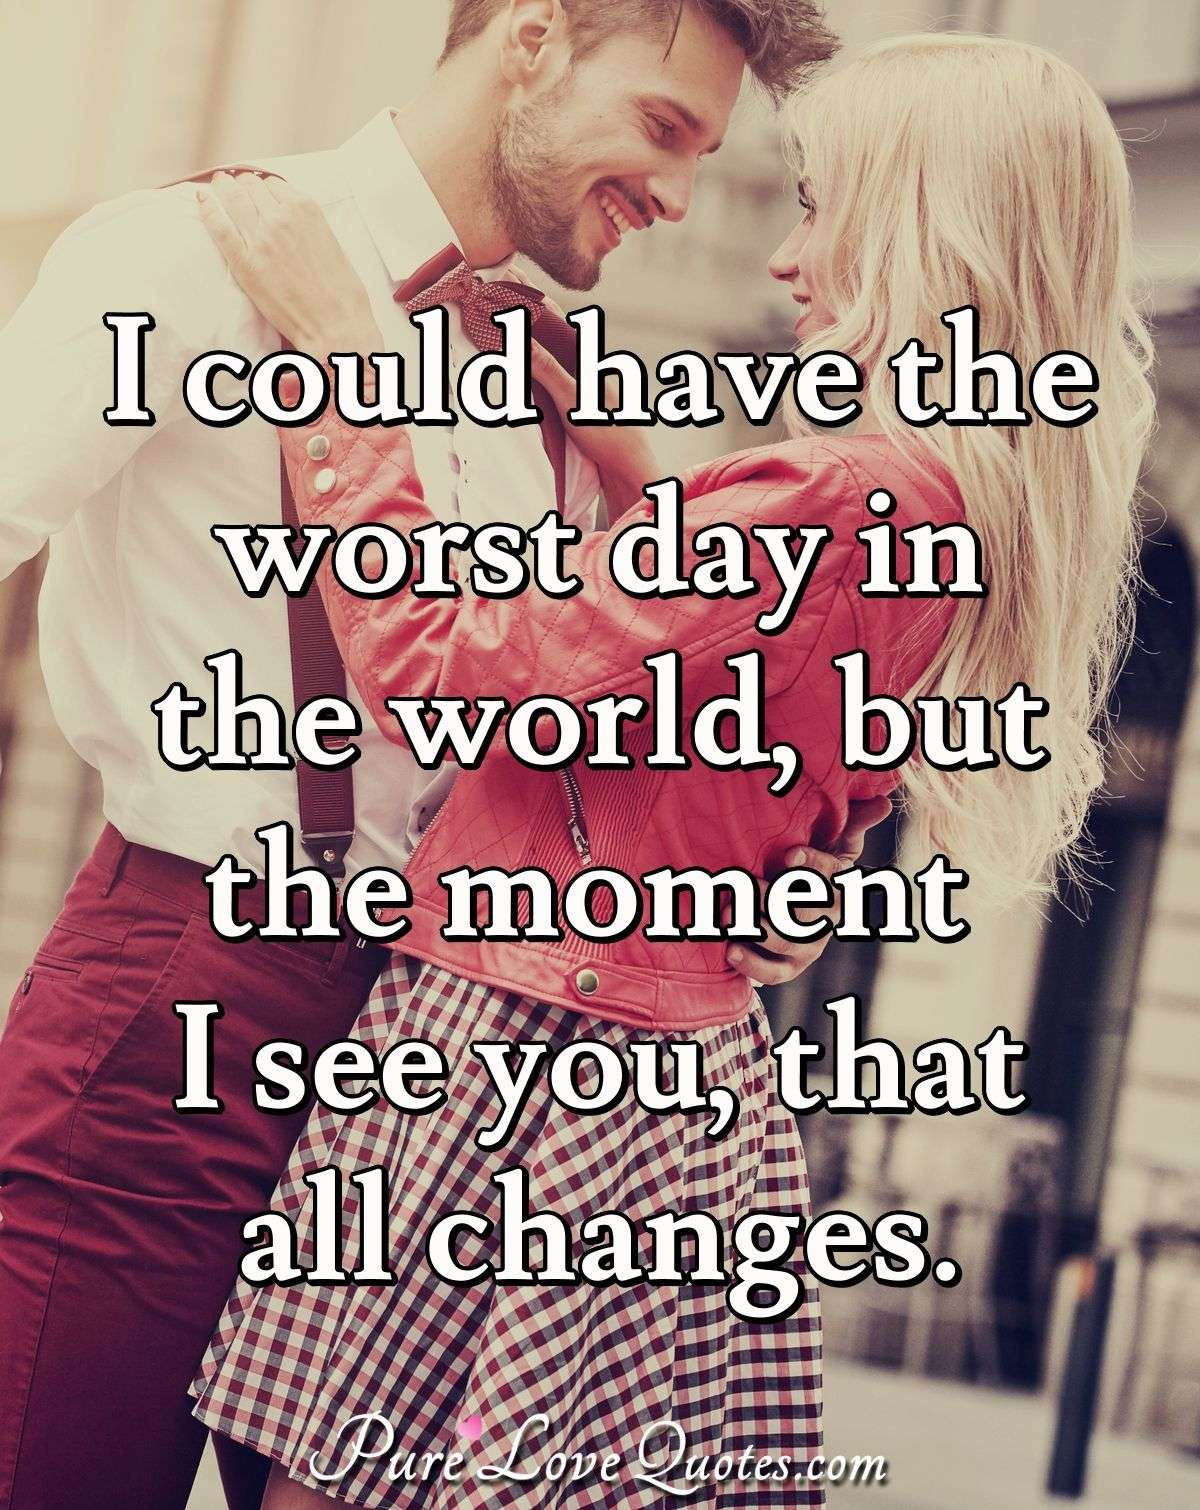 I could have the worst day in the world, but the moment I see you, that all changes. - Anonymous